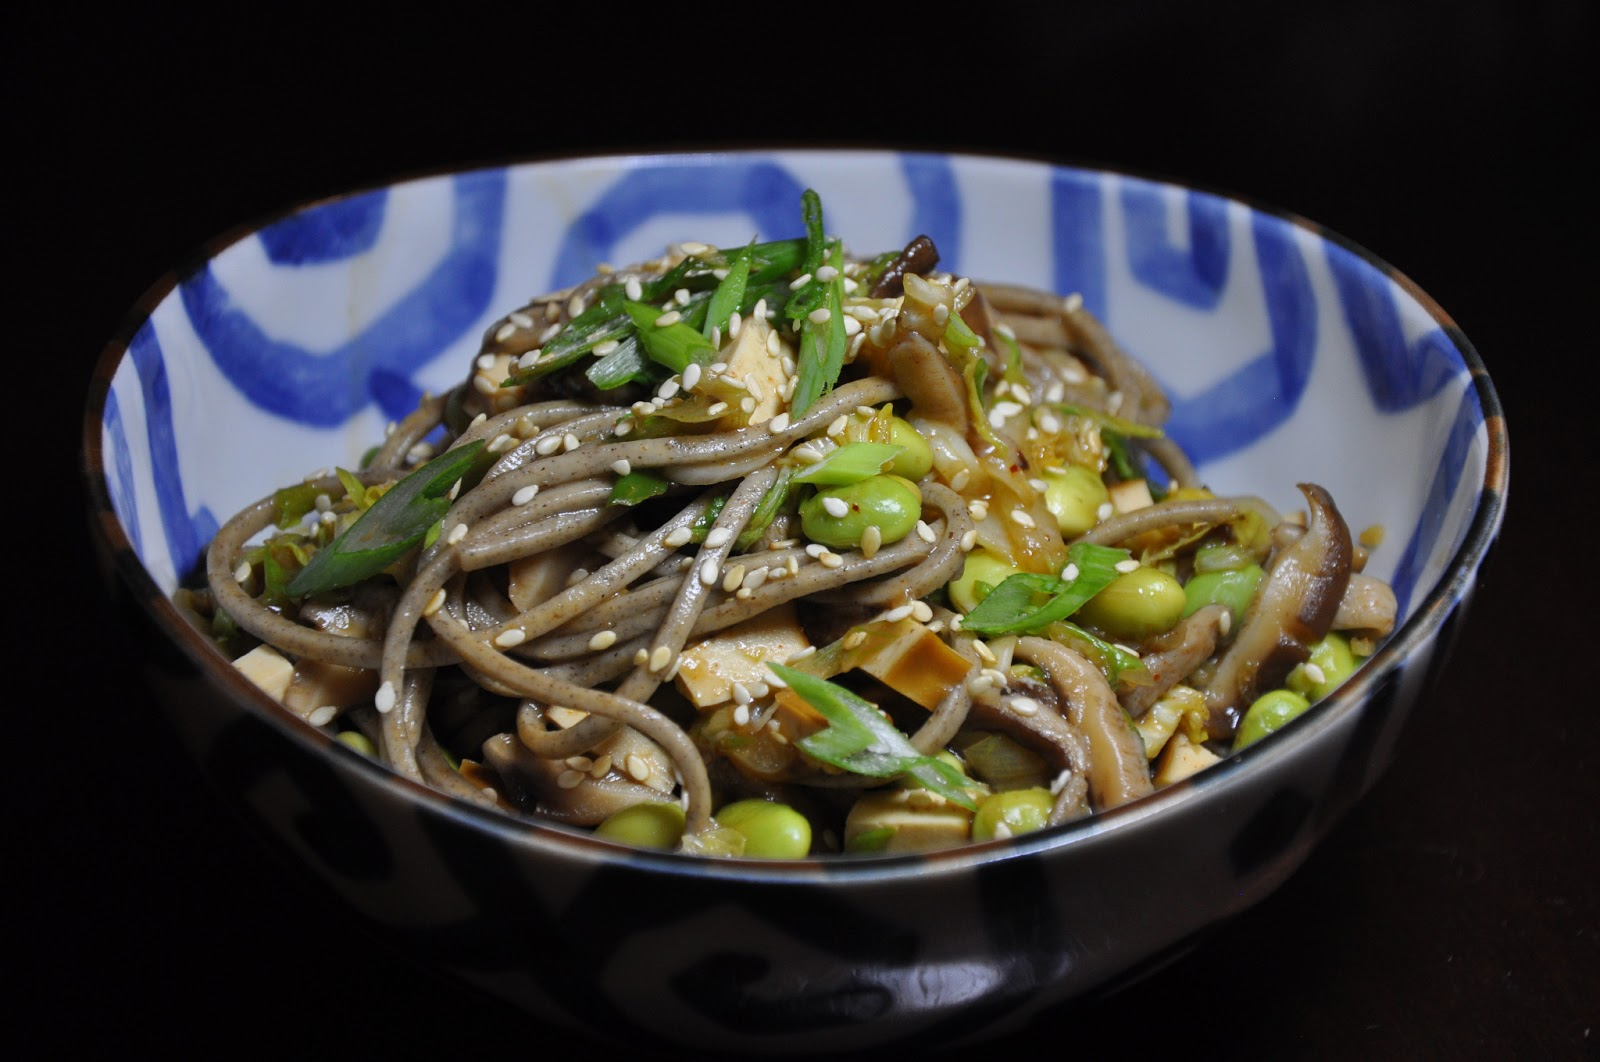 Spicy Soba Noodles with Smoked Tofu, Shiitakes and Cabbage